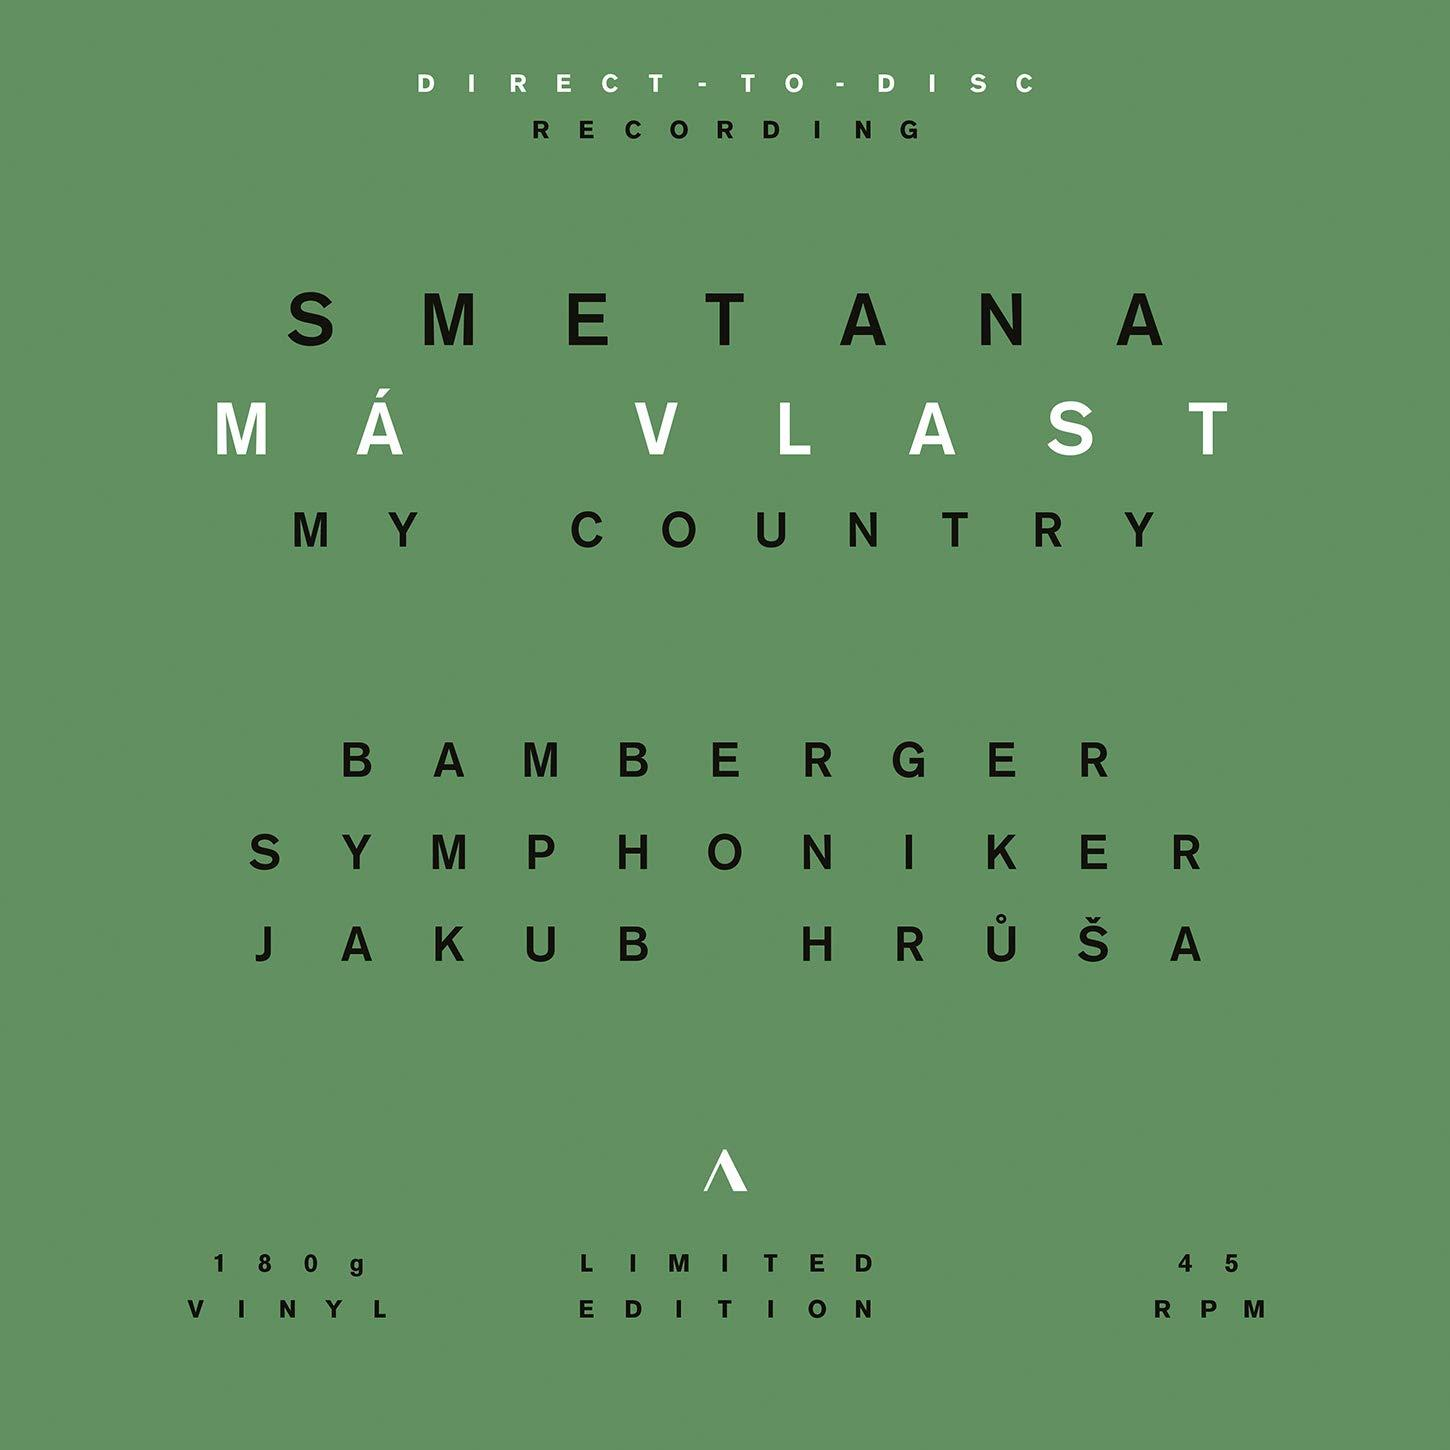 Bedrich Smetana - Smetana: Ma vlast (Bamberg Symphony) [3LP] - Urban Vinyl | Records, Headphones, and more.